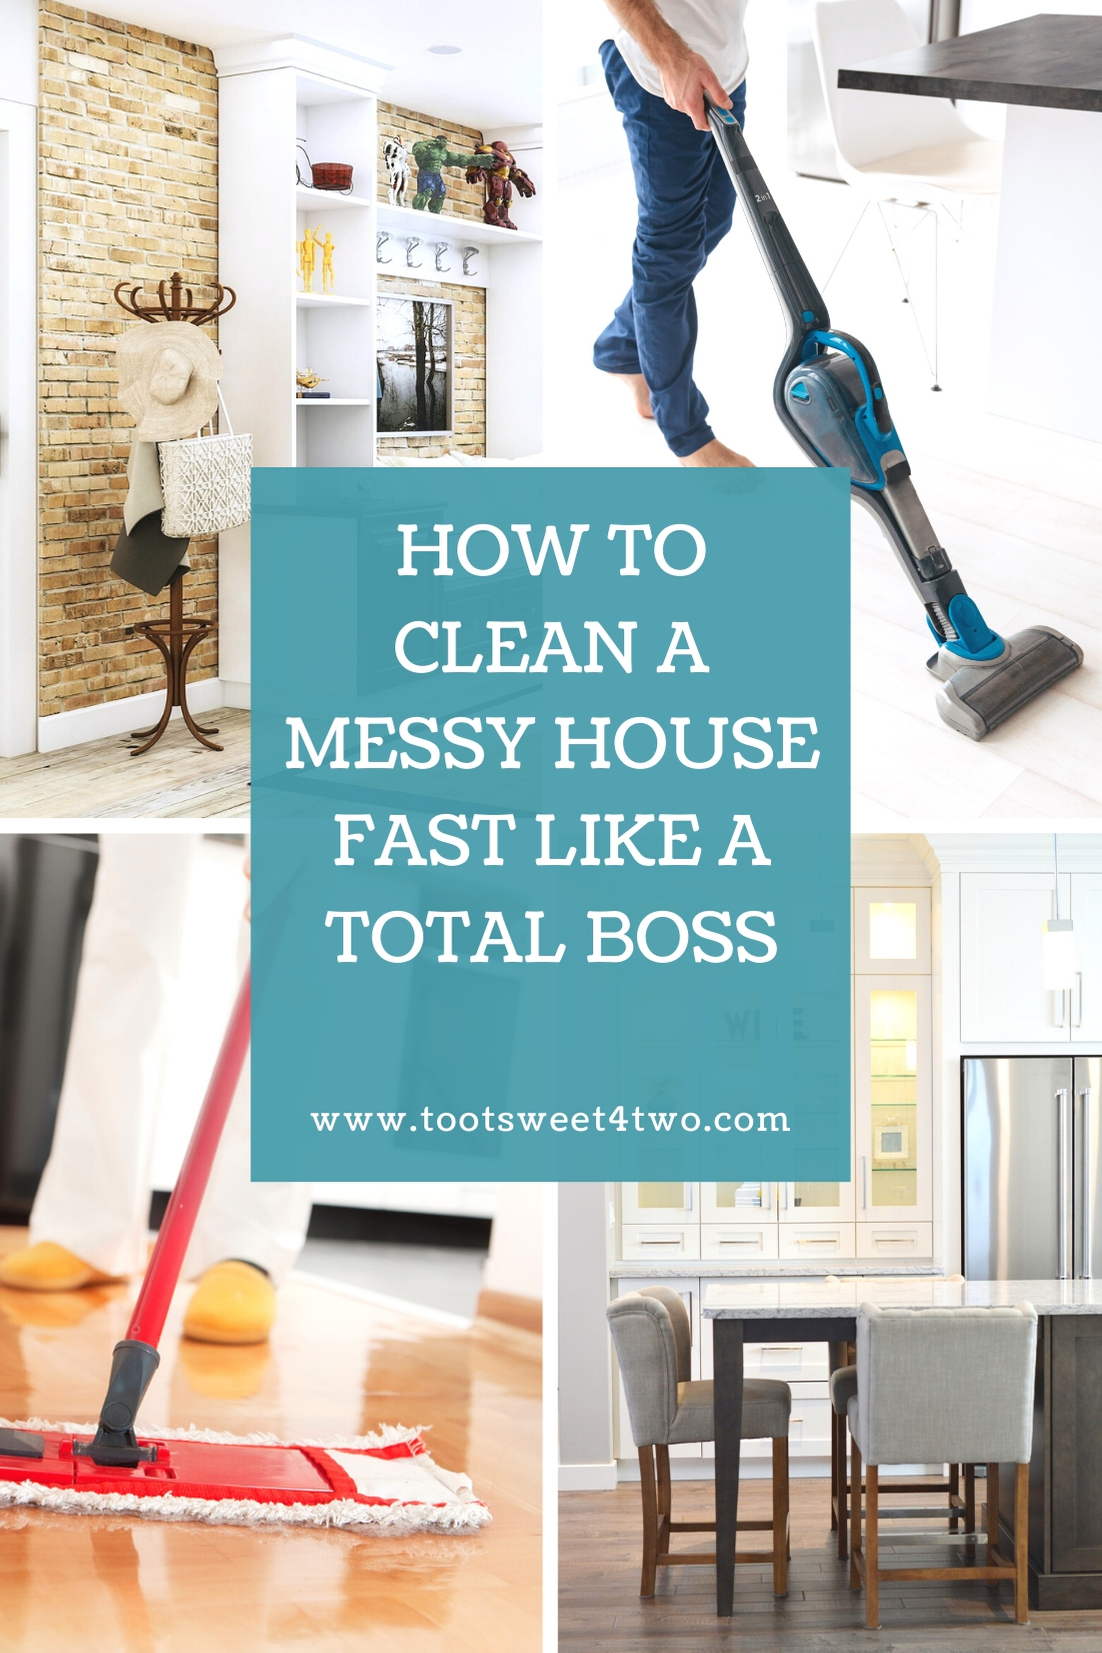 How To Clean A Messy House Fast Like A Total Boss Toot Sweet 4 Two